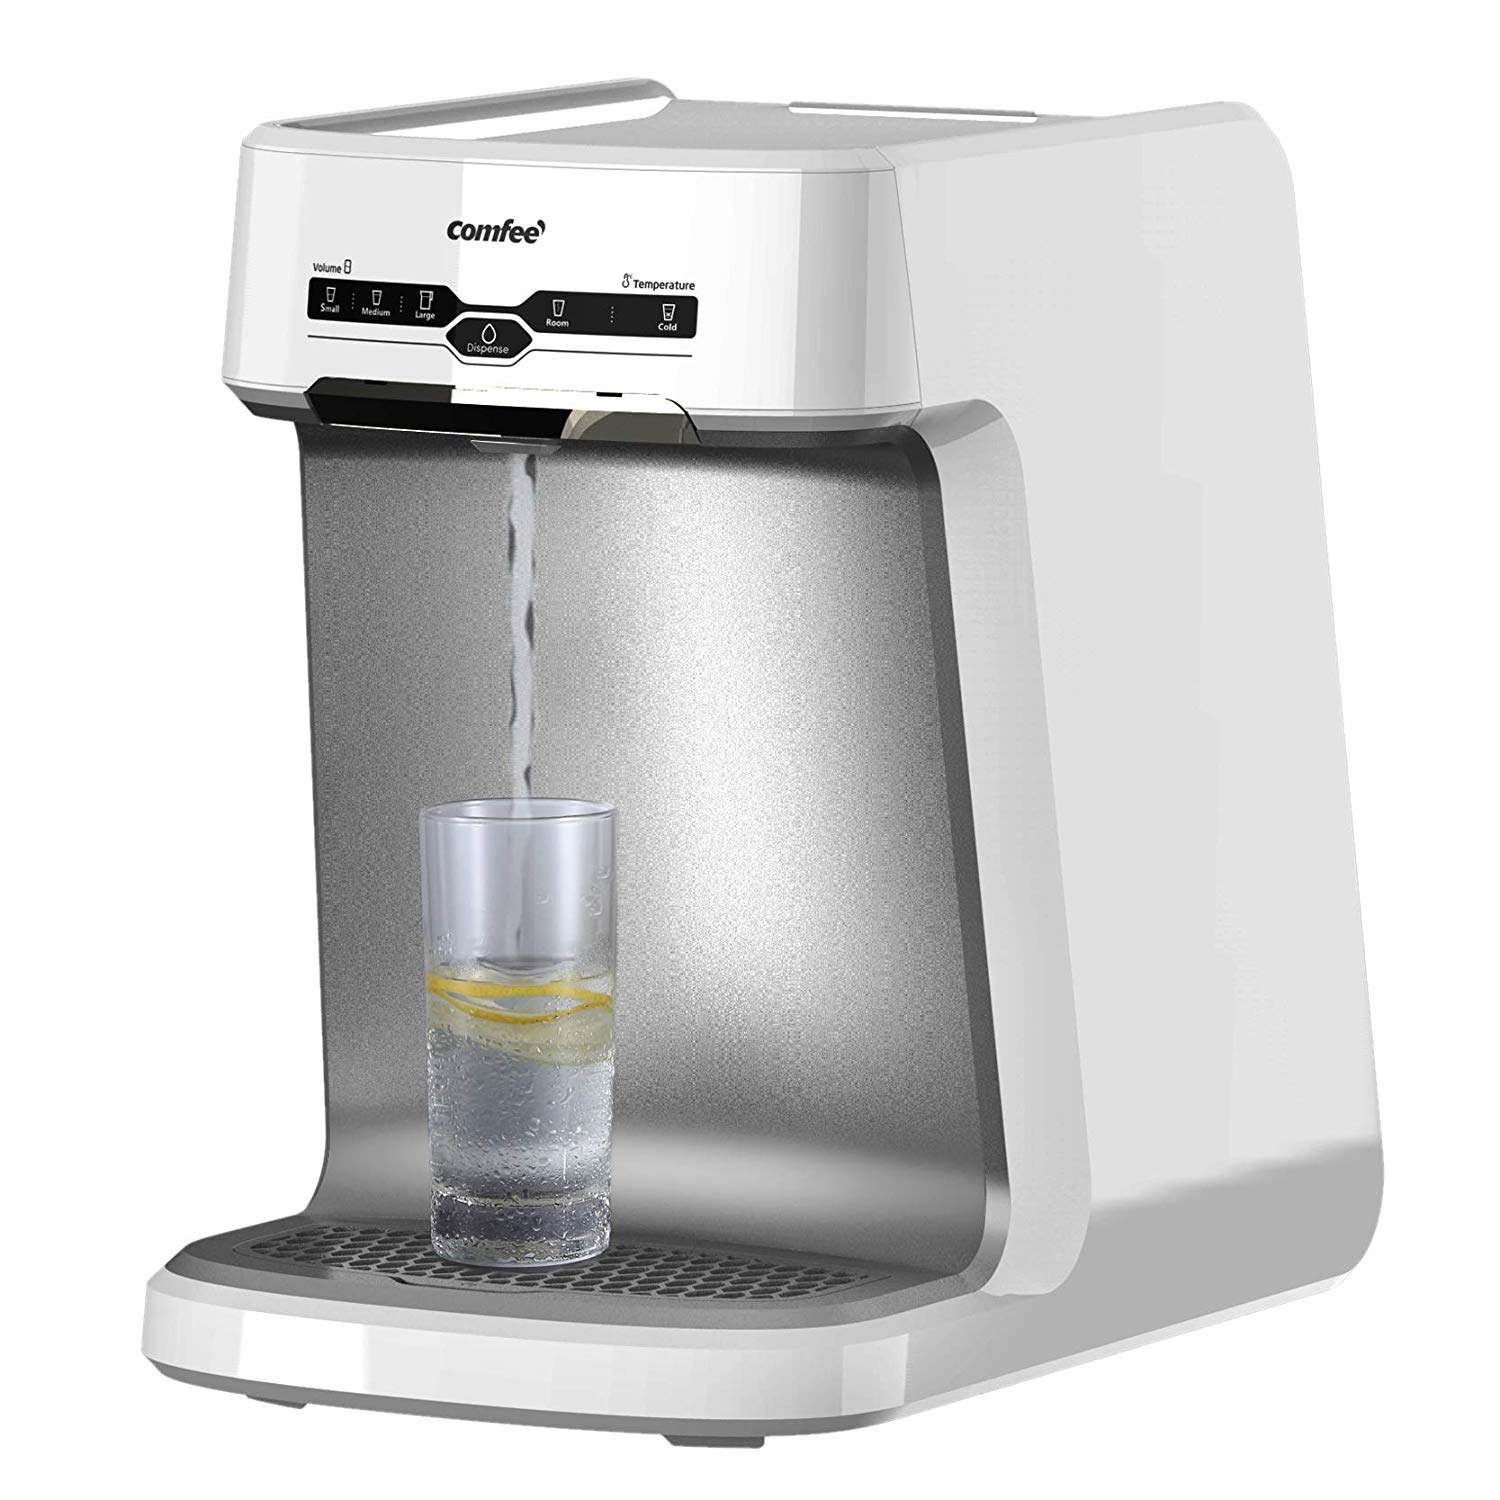 Comfee Countertop Mini Water Cooler Dispenser with Filter